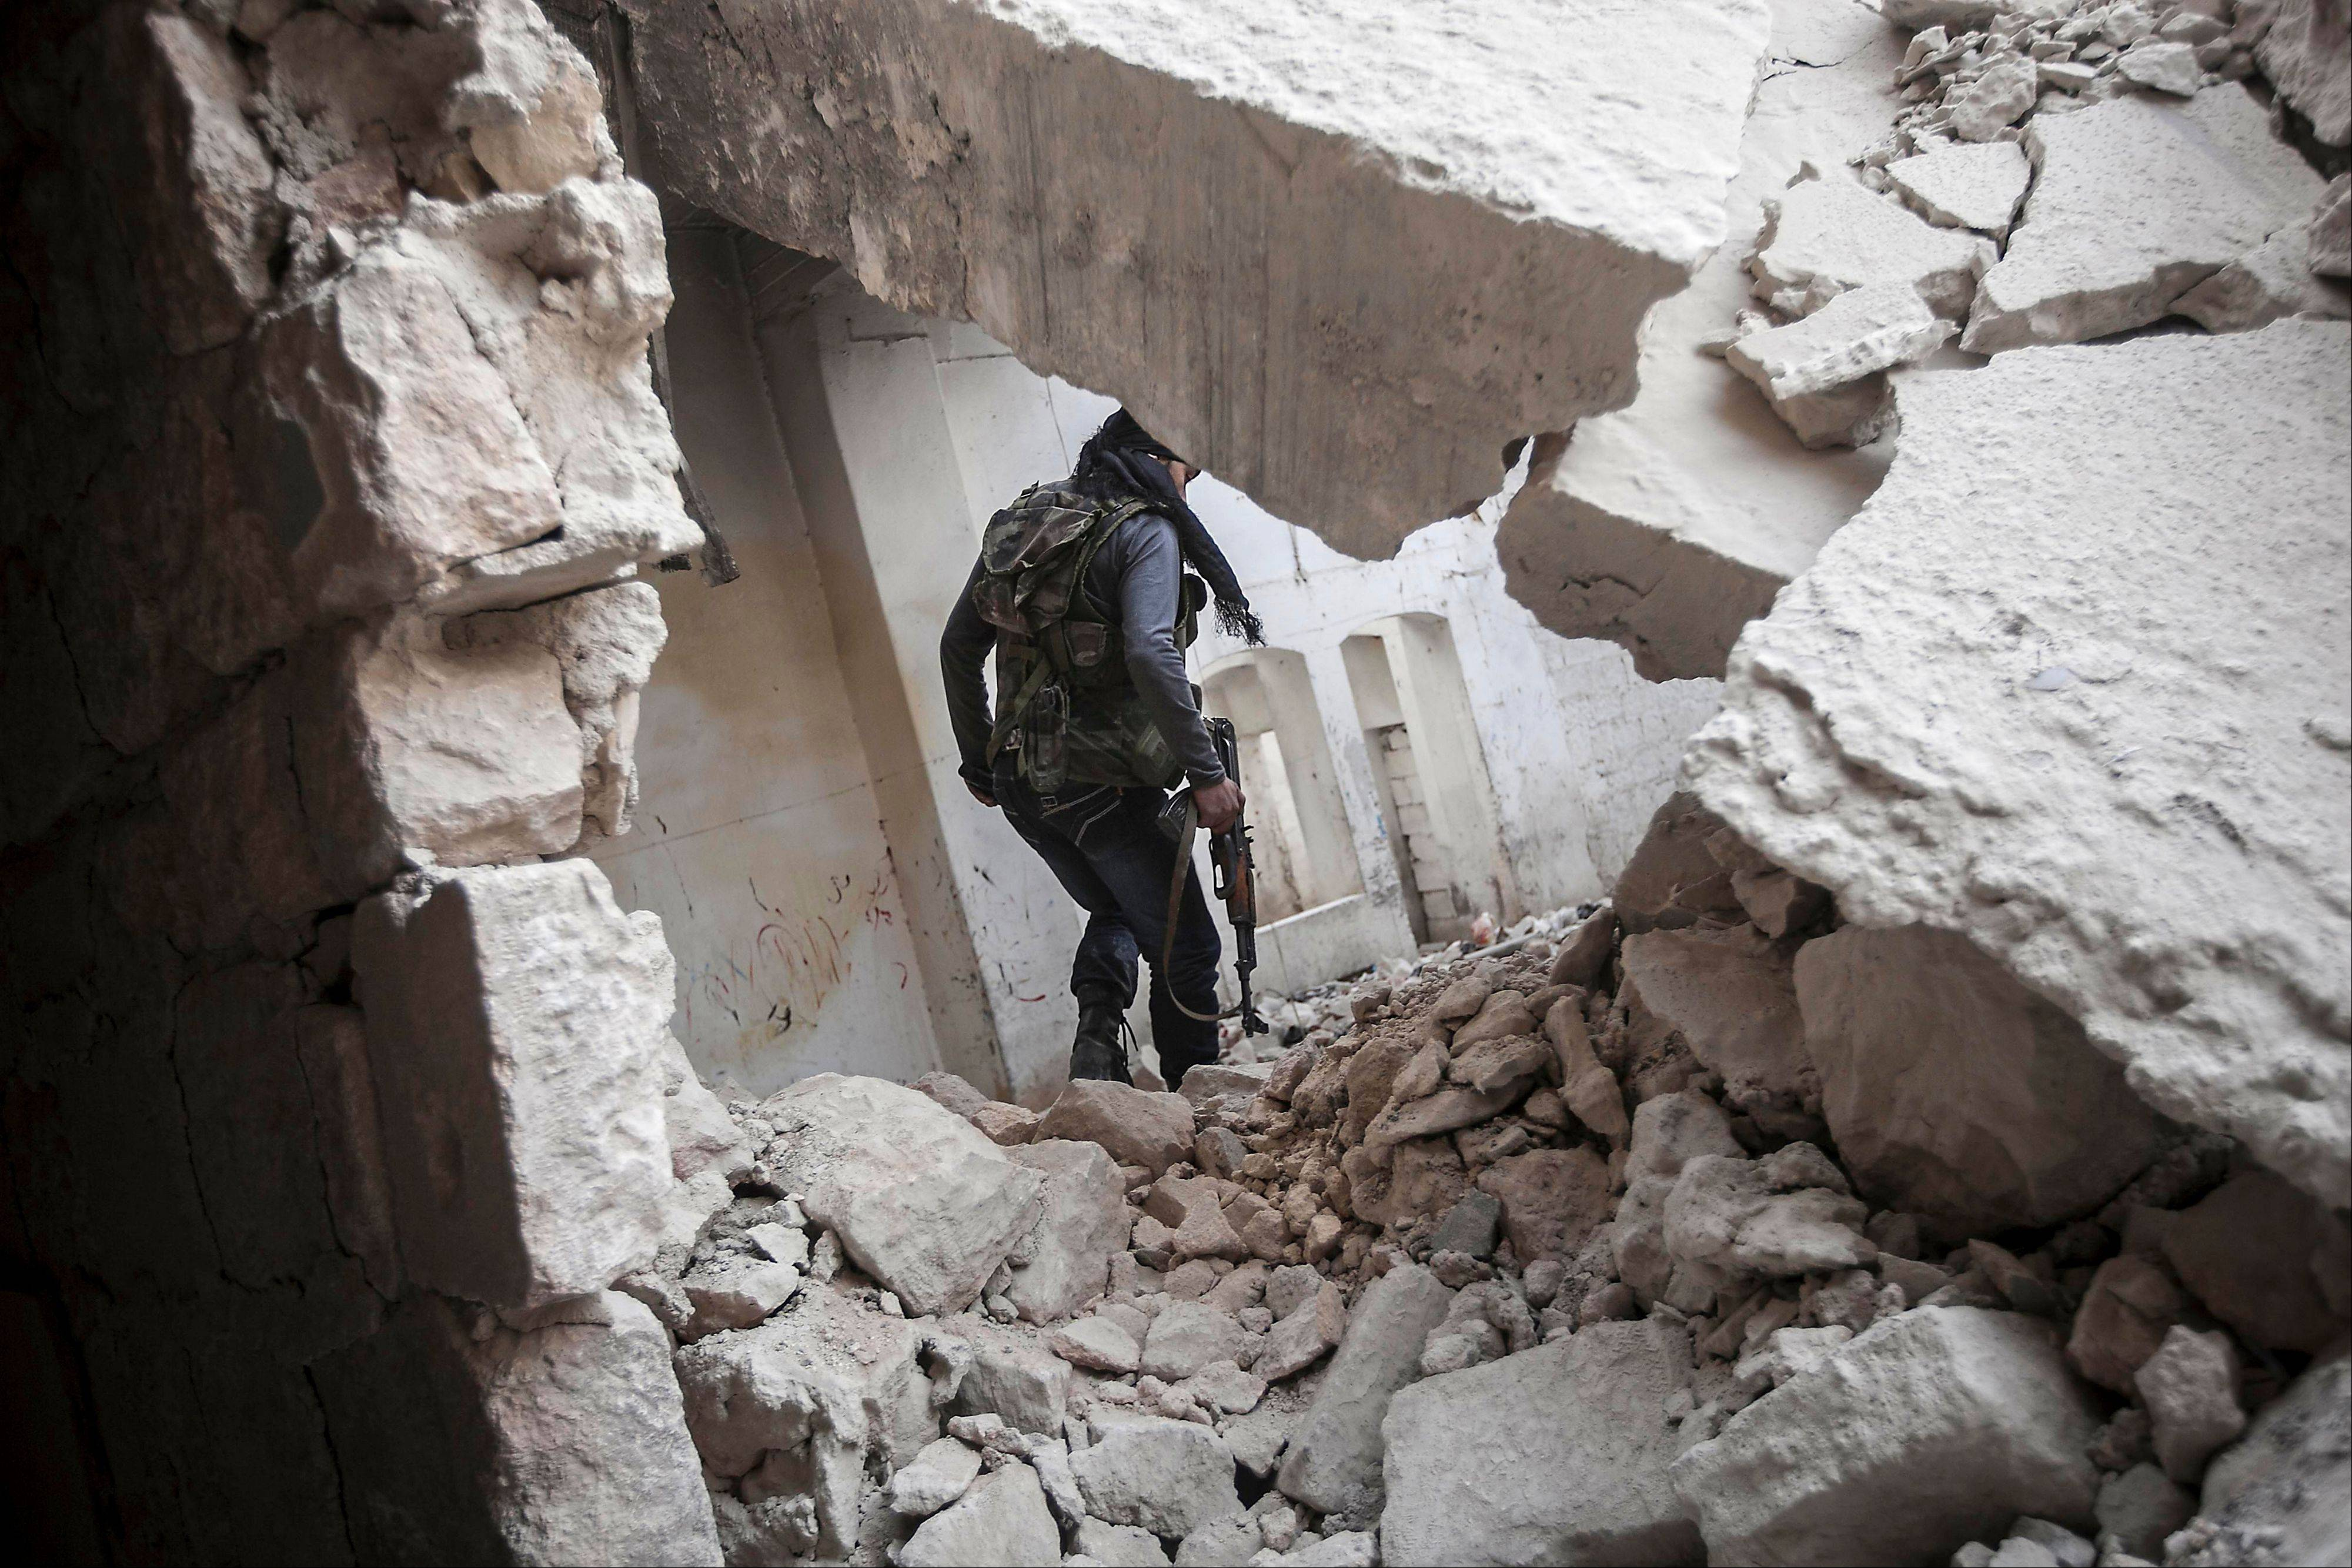 A rebel fighter walks Friday among the debris of damaged residential buildings after several days of intense fighting between rebel fighters and the Syrian army in the Karm al-Jebel neighborhood in Aleppo, Syria.